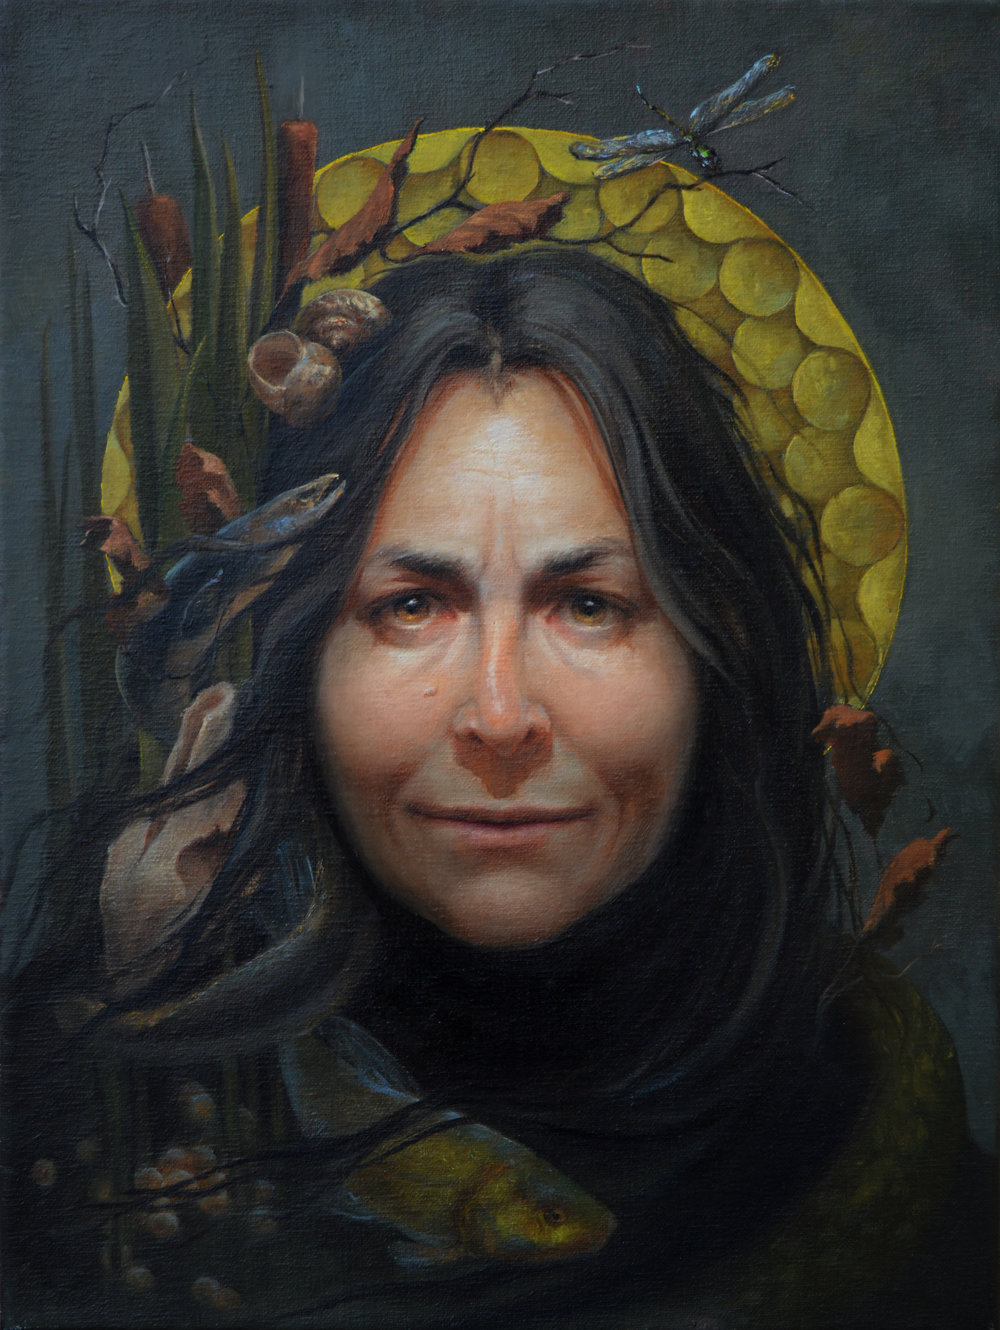 Melinda Borysevicz, Our Lady of the Riverbed, oil on linen, 16x12%22, 2017-2018. jpg.jpg